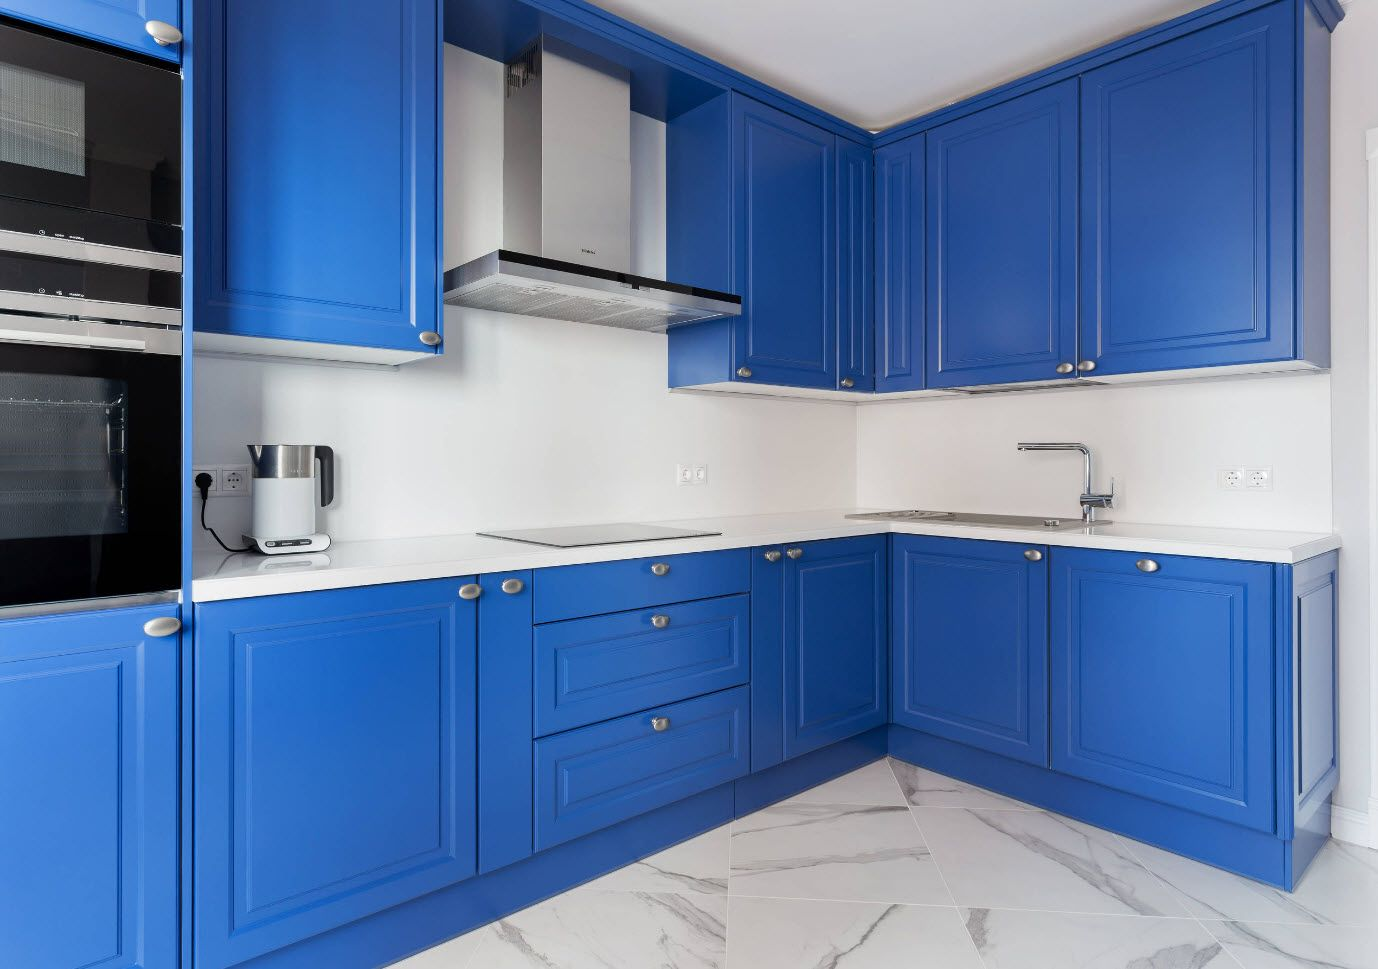 Blue and white color combination for mid-century kitchen